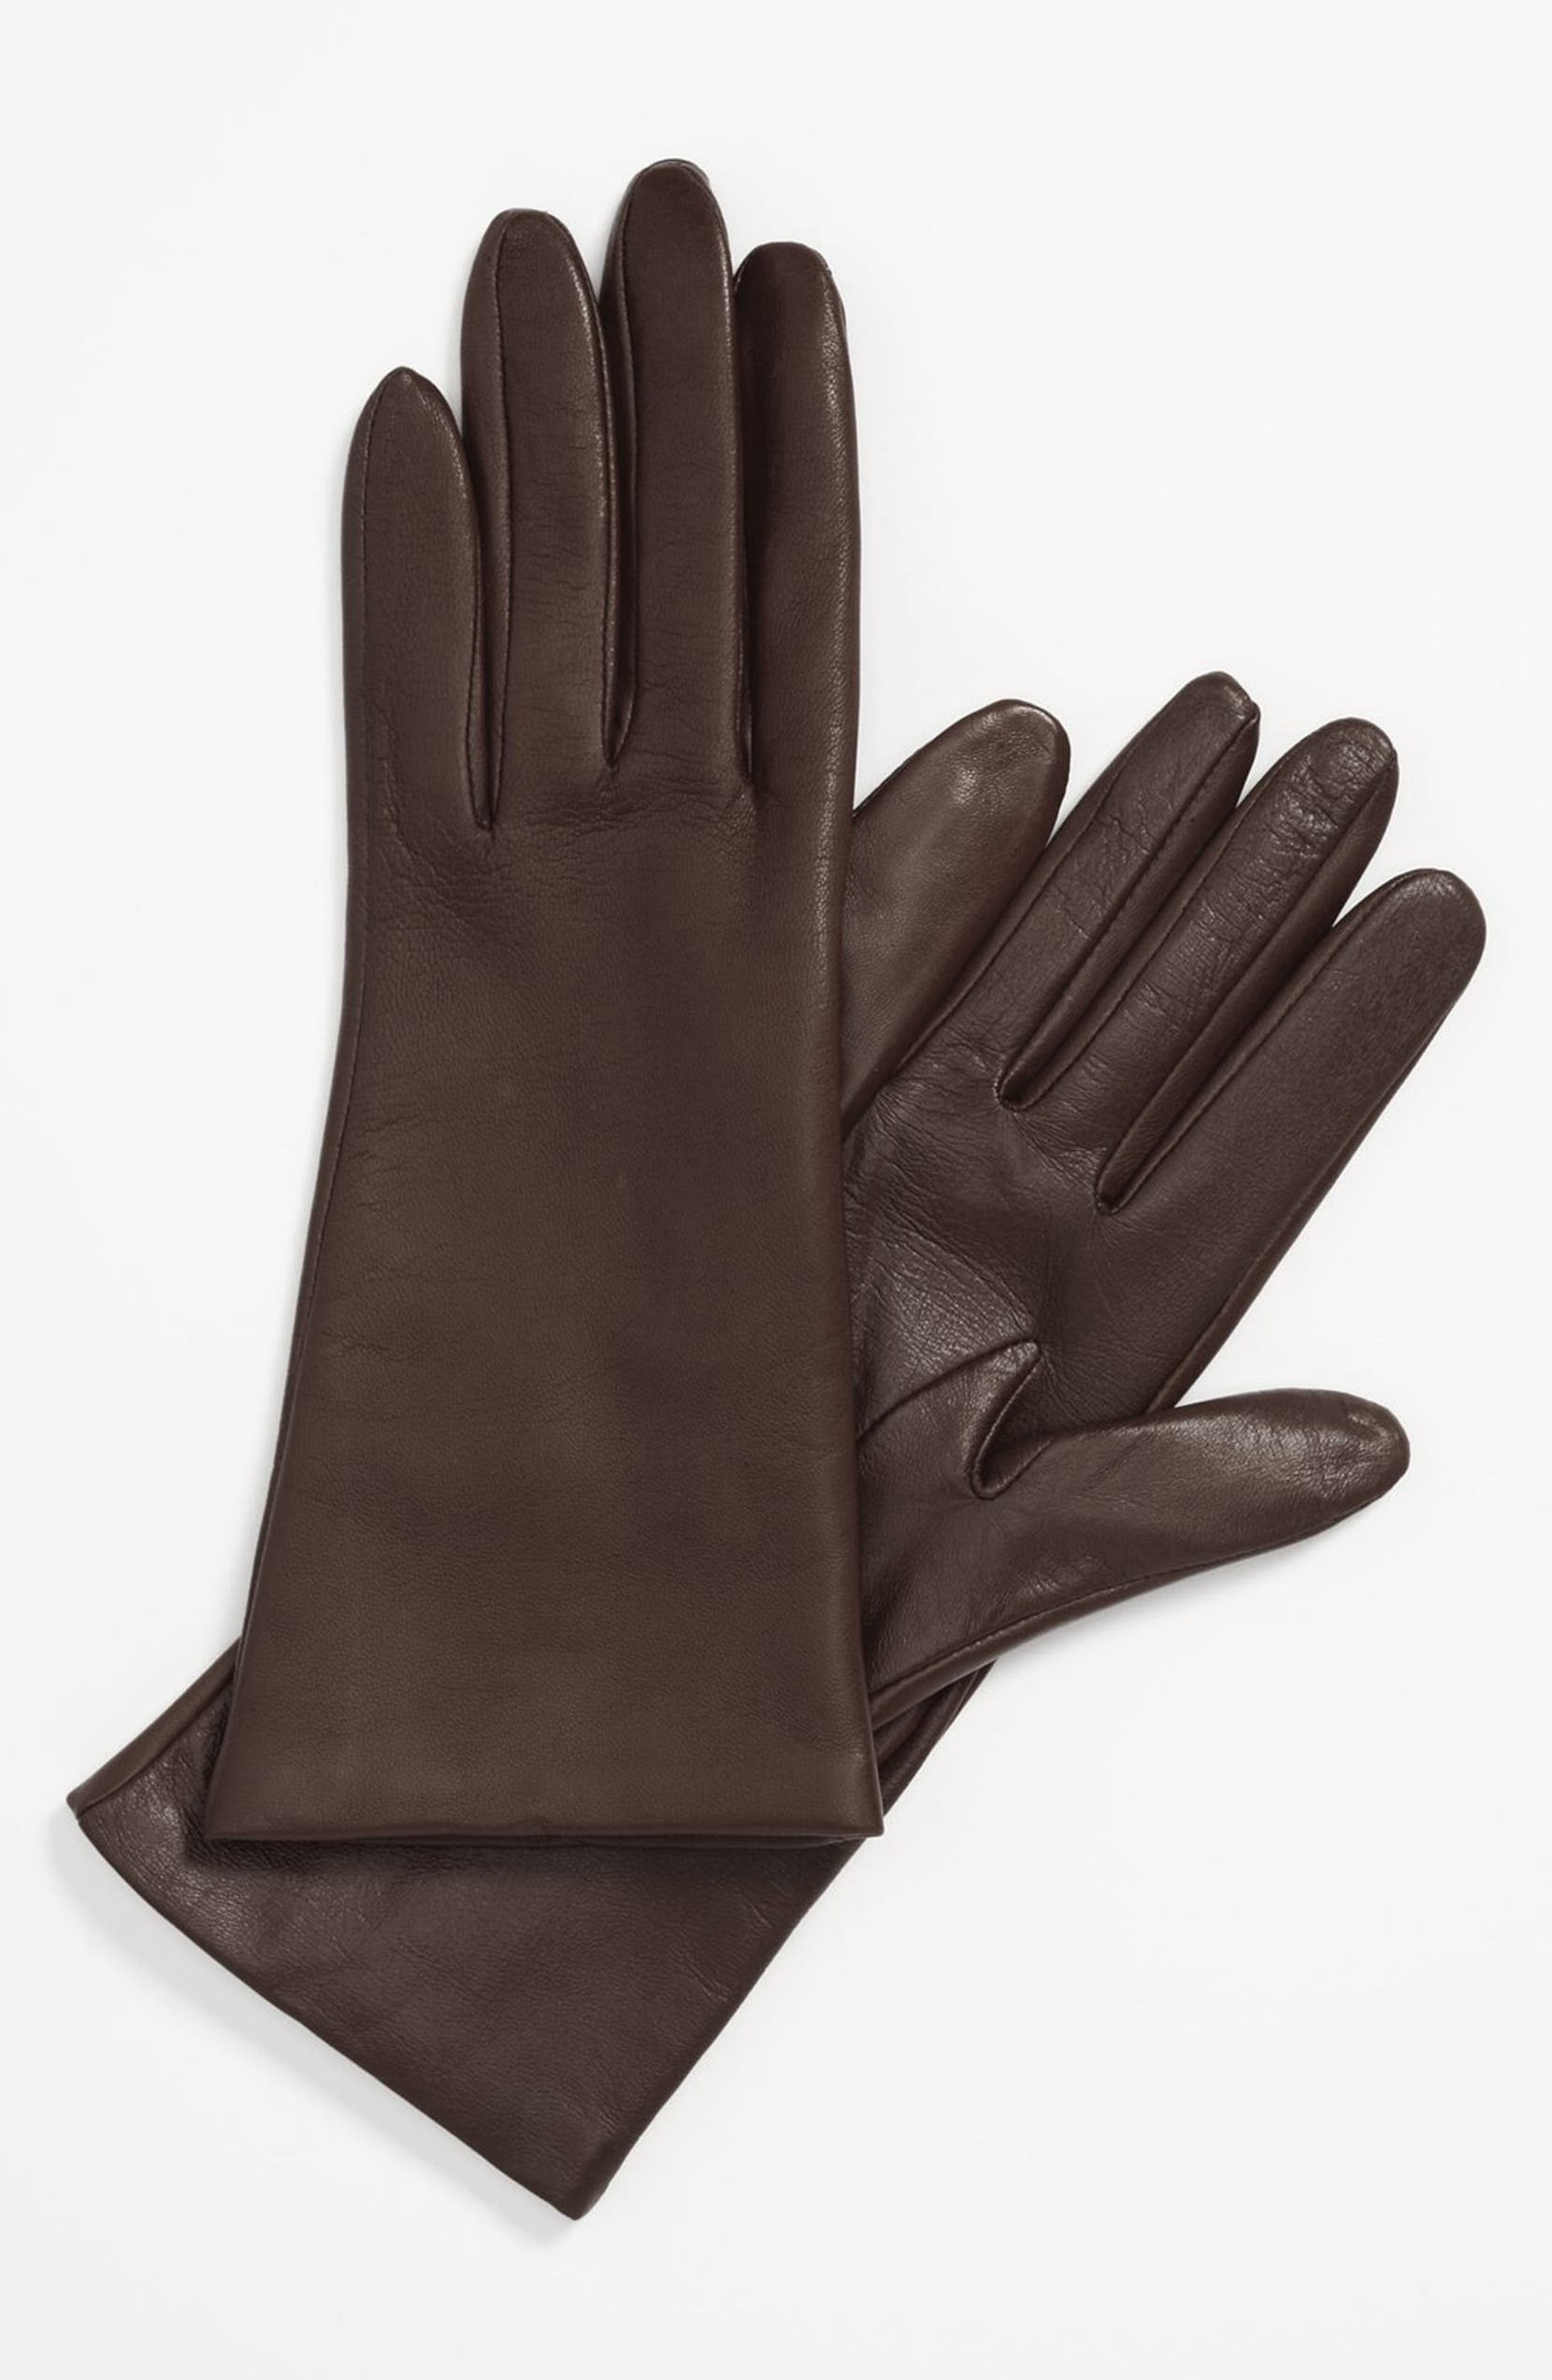 6326ef27d2ba7 Fownes Brothers 'Basic Tech' Cashmere Lined Leather Gloves (Nordstrom  Exclusive) | Nordstrom